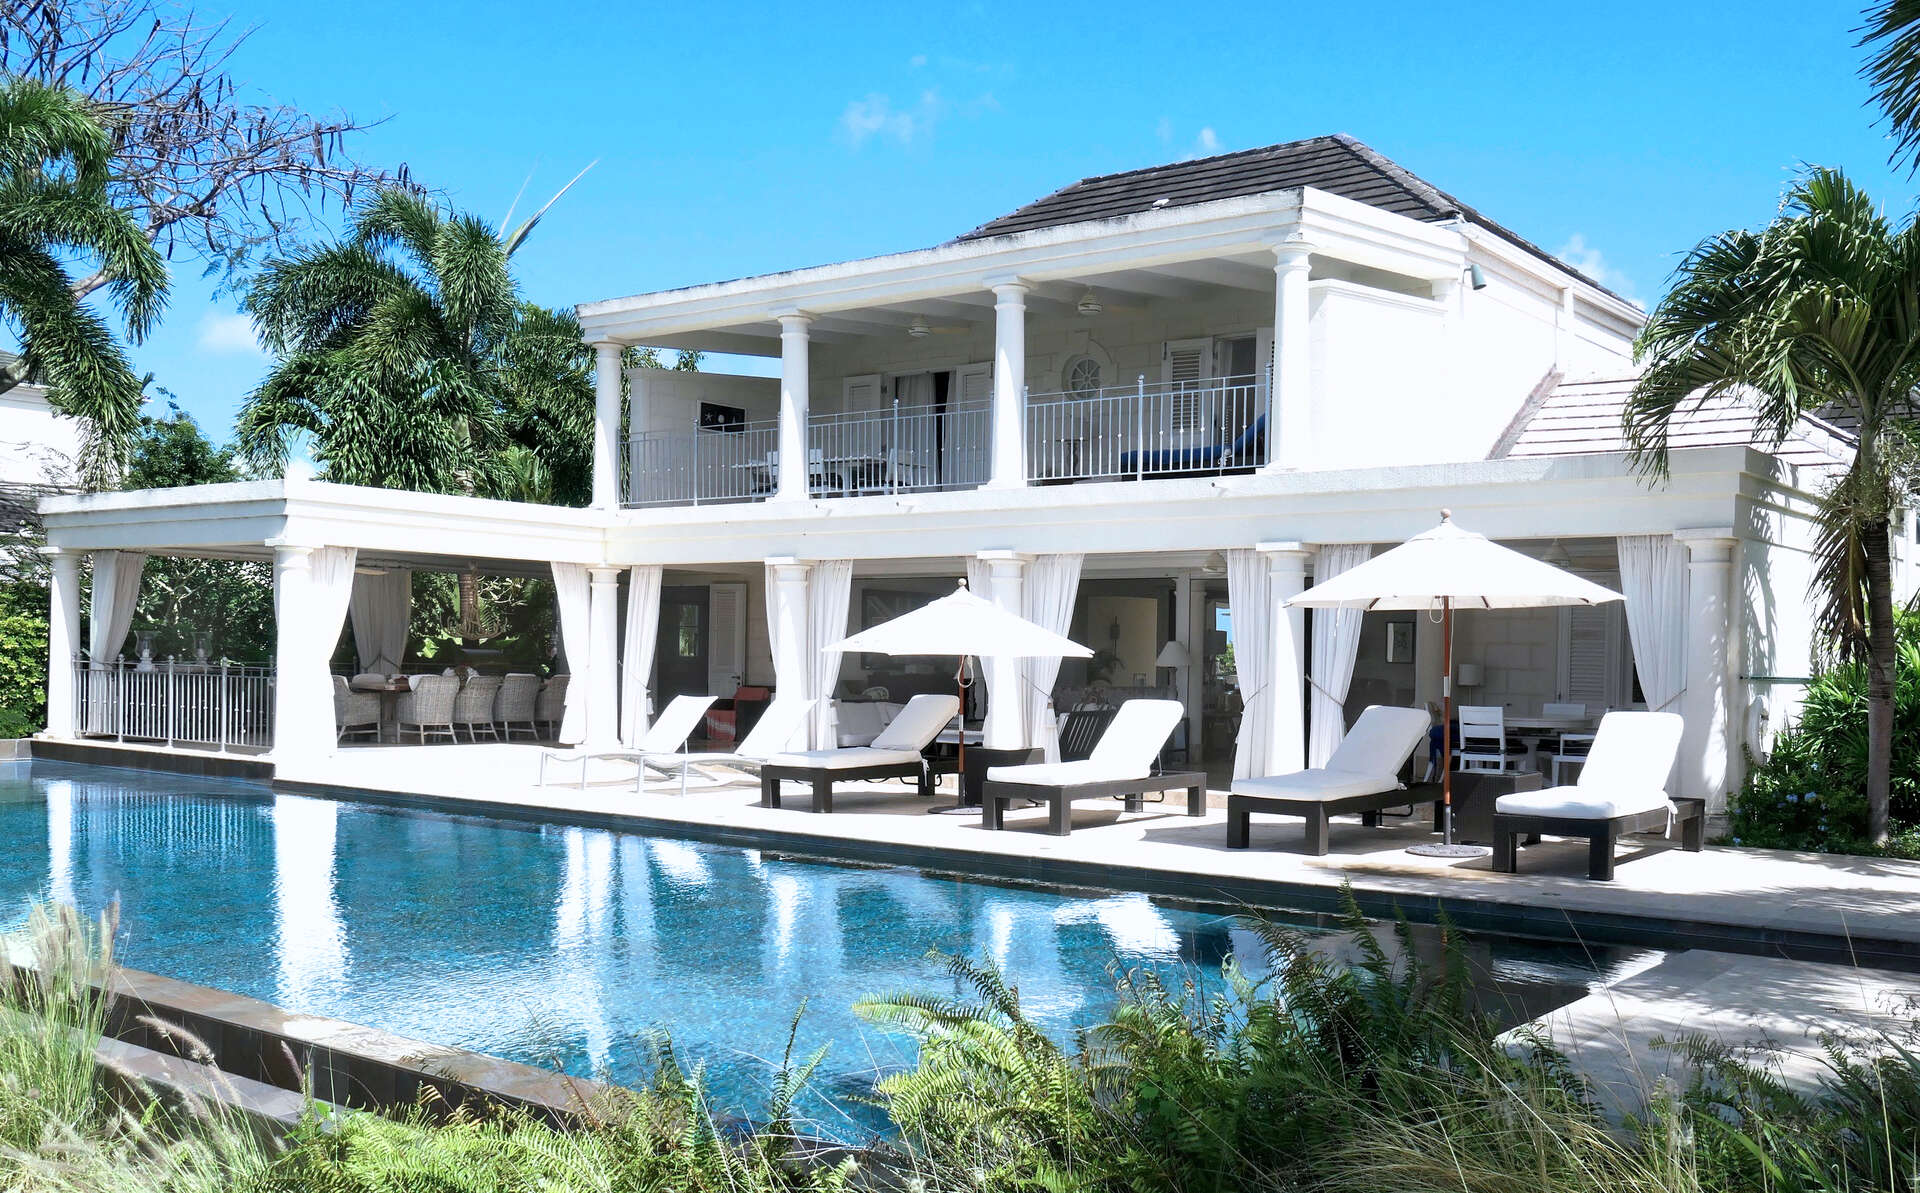 Luxury villa rentals caribbean - Barbados - St james - Royal westmoreland golf resort - Lelant - Image 1/15